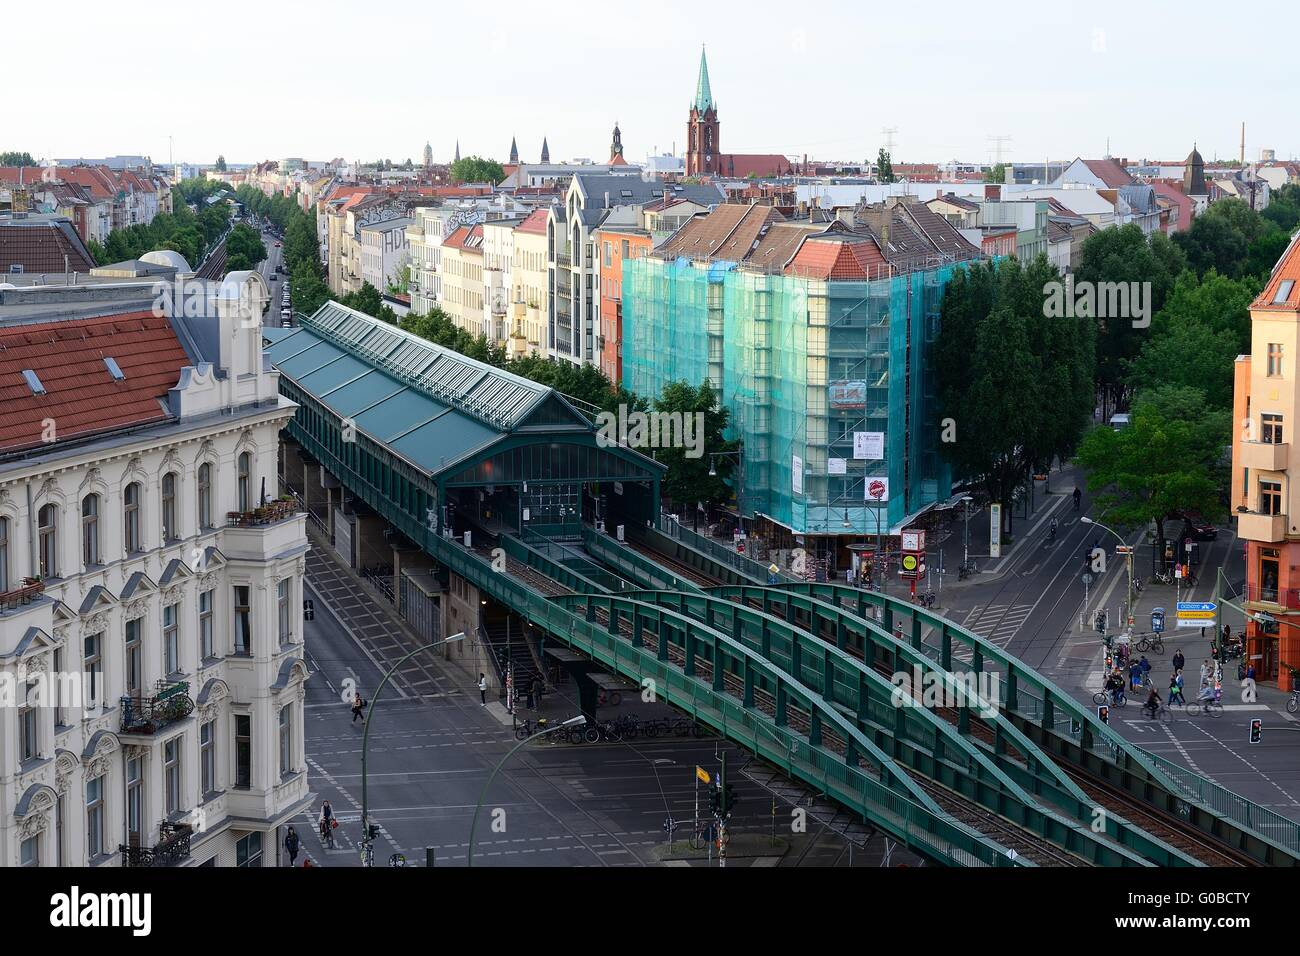 prenzlauer berg u bahn station berlin stock photo royalty free image 103513787 alamy. Black Bedroom Furniture Sets. Home Design Ideas